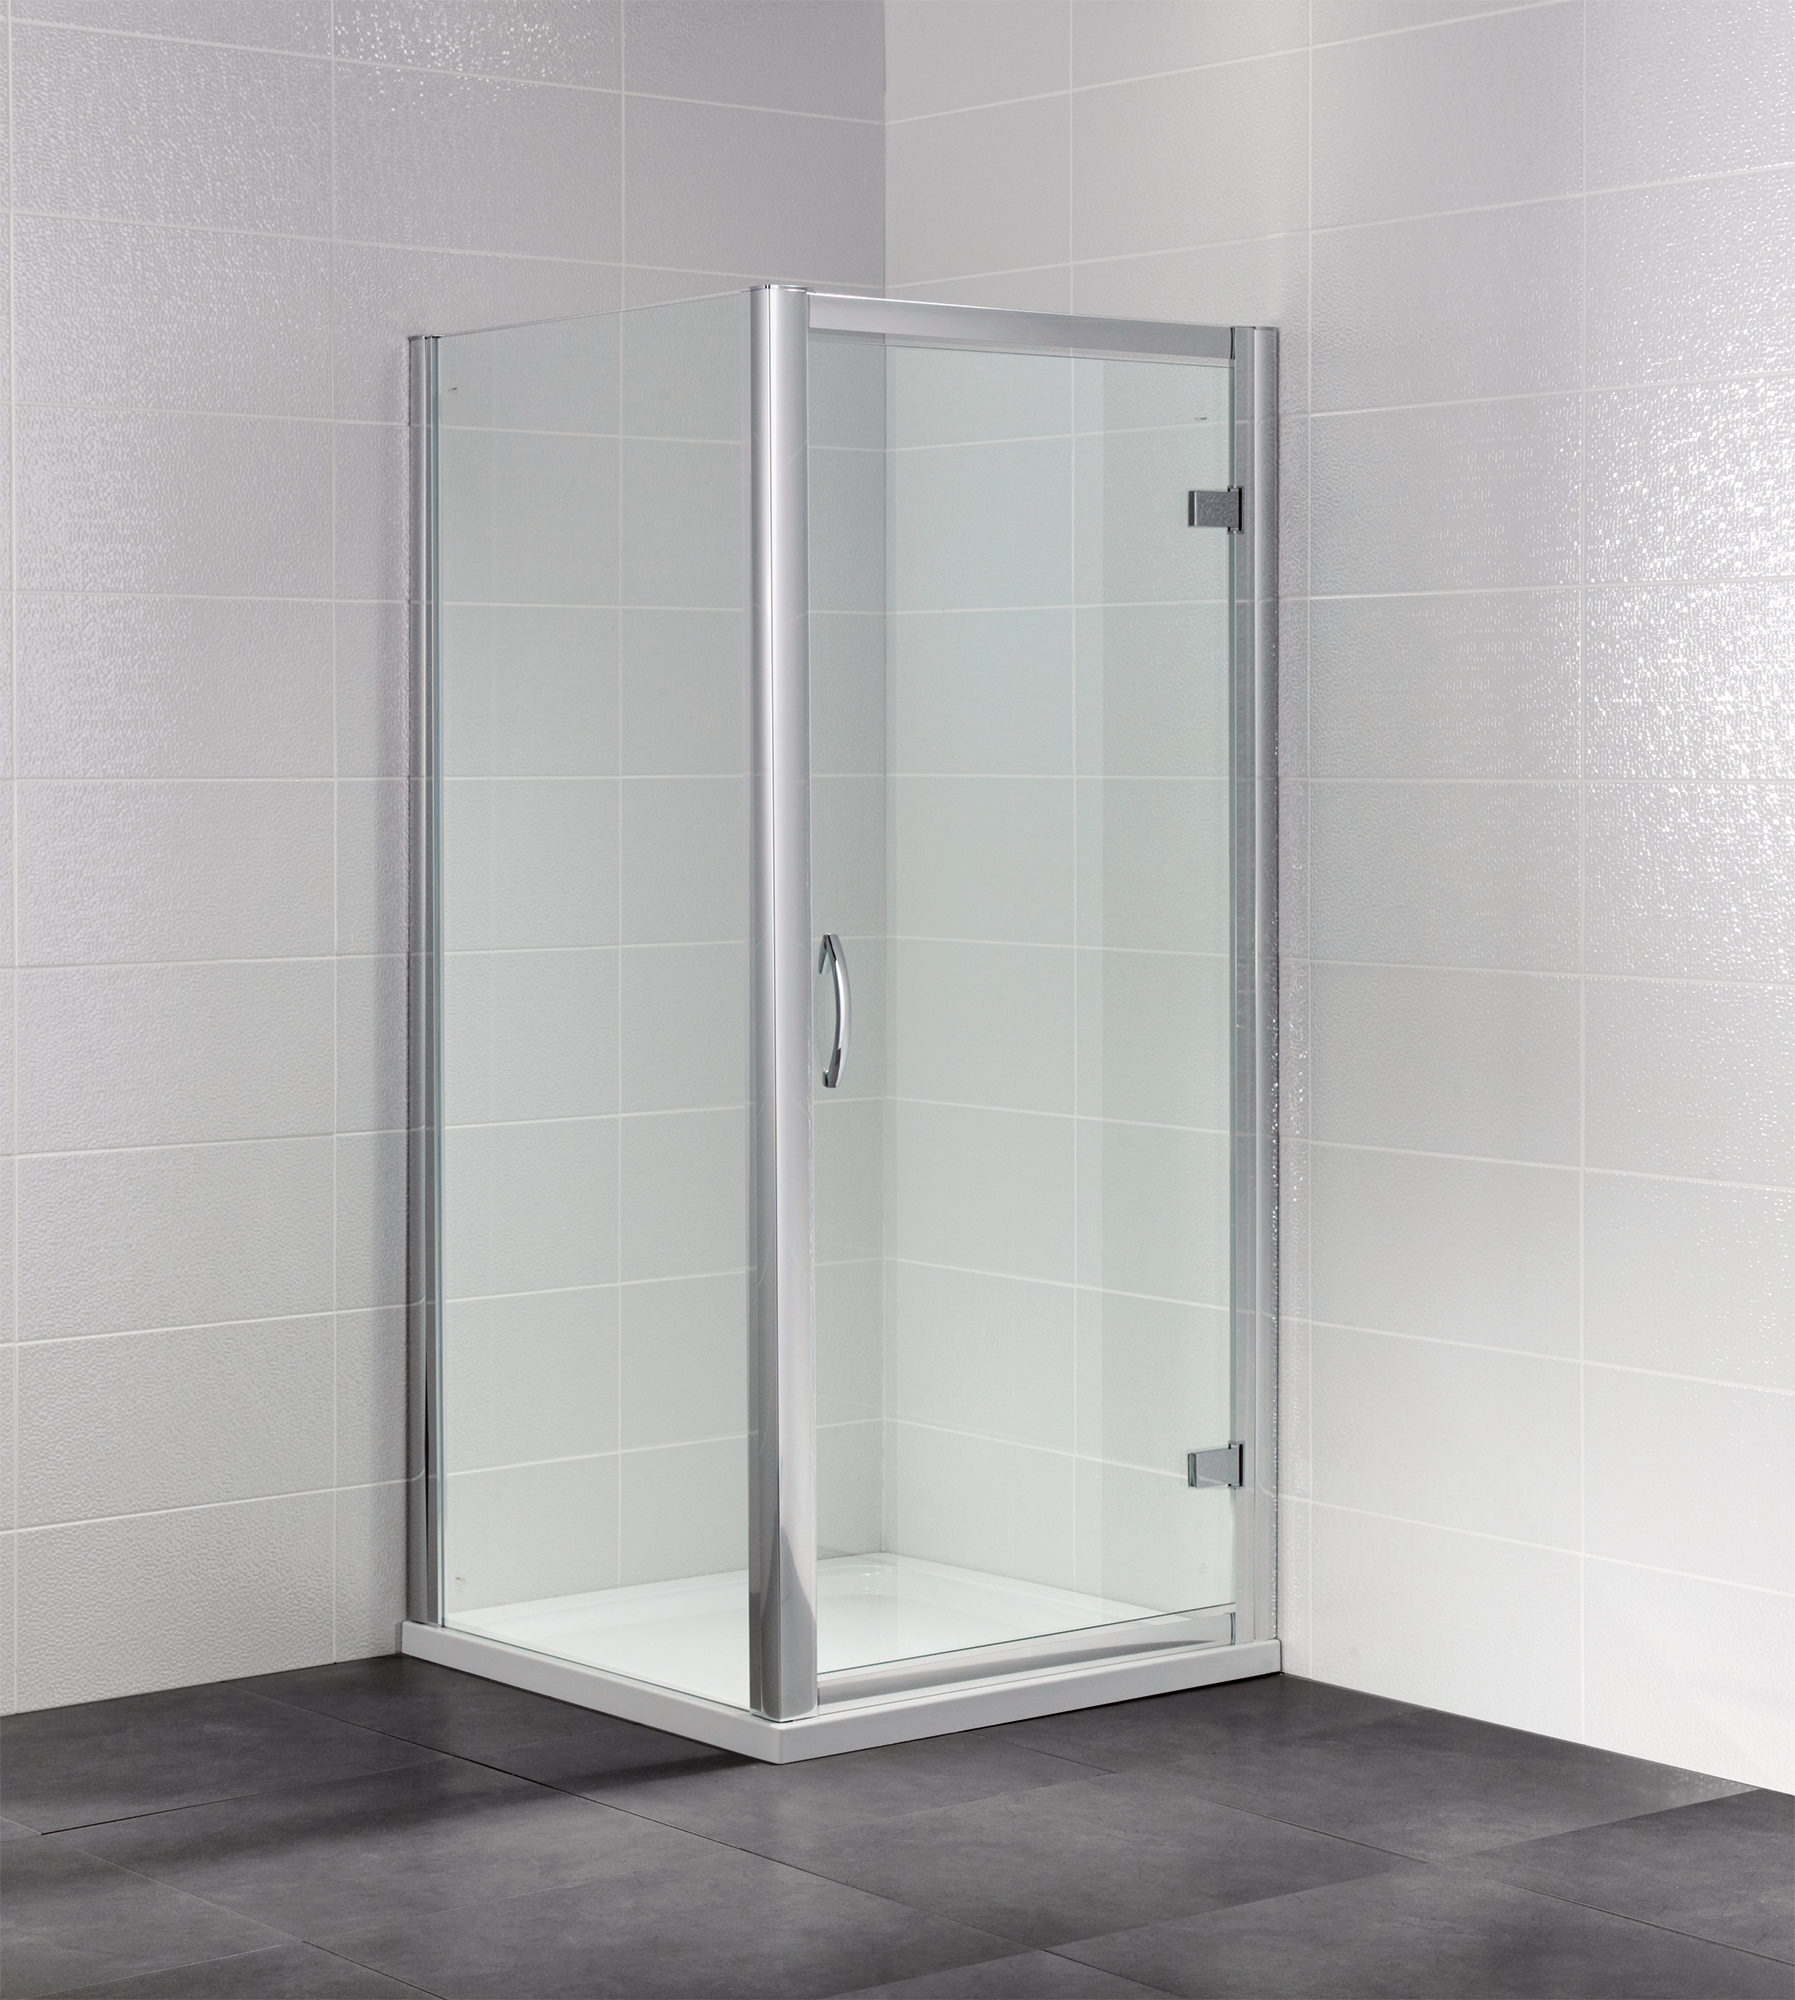 April Identiti2 1900mm High Semi Frameless Hinged Shower Door